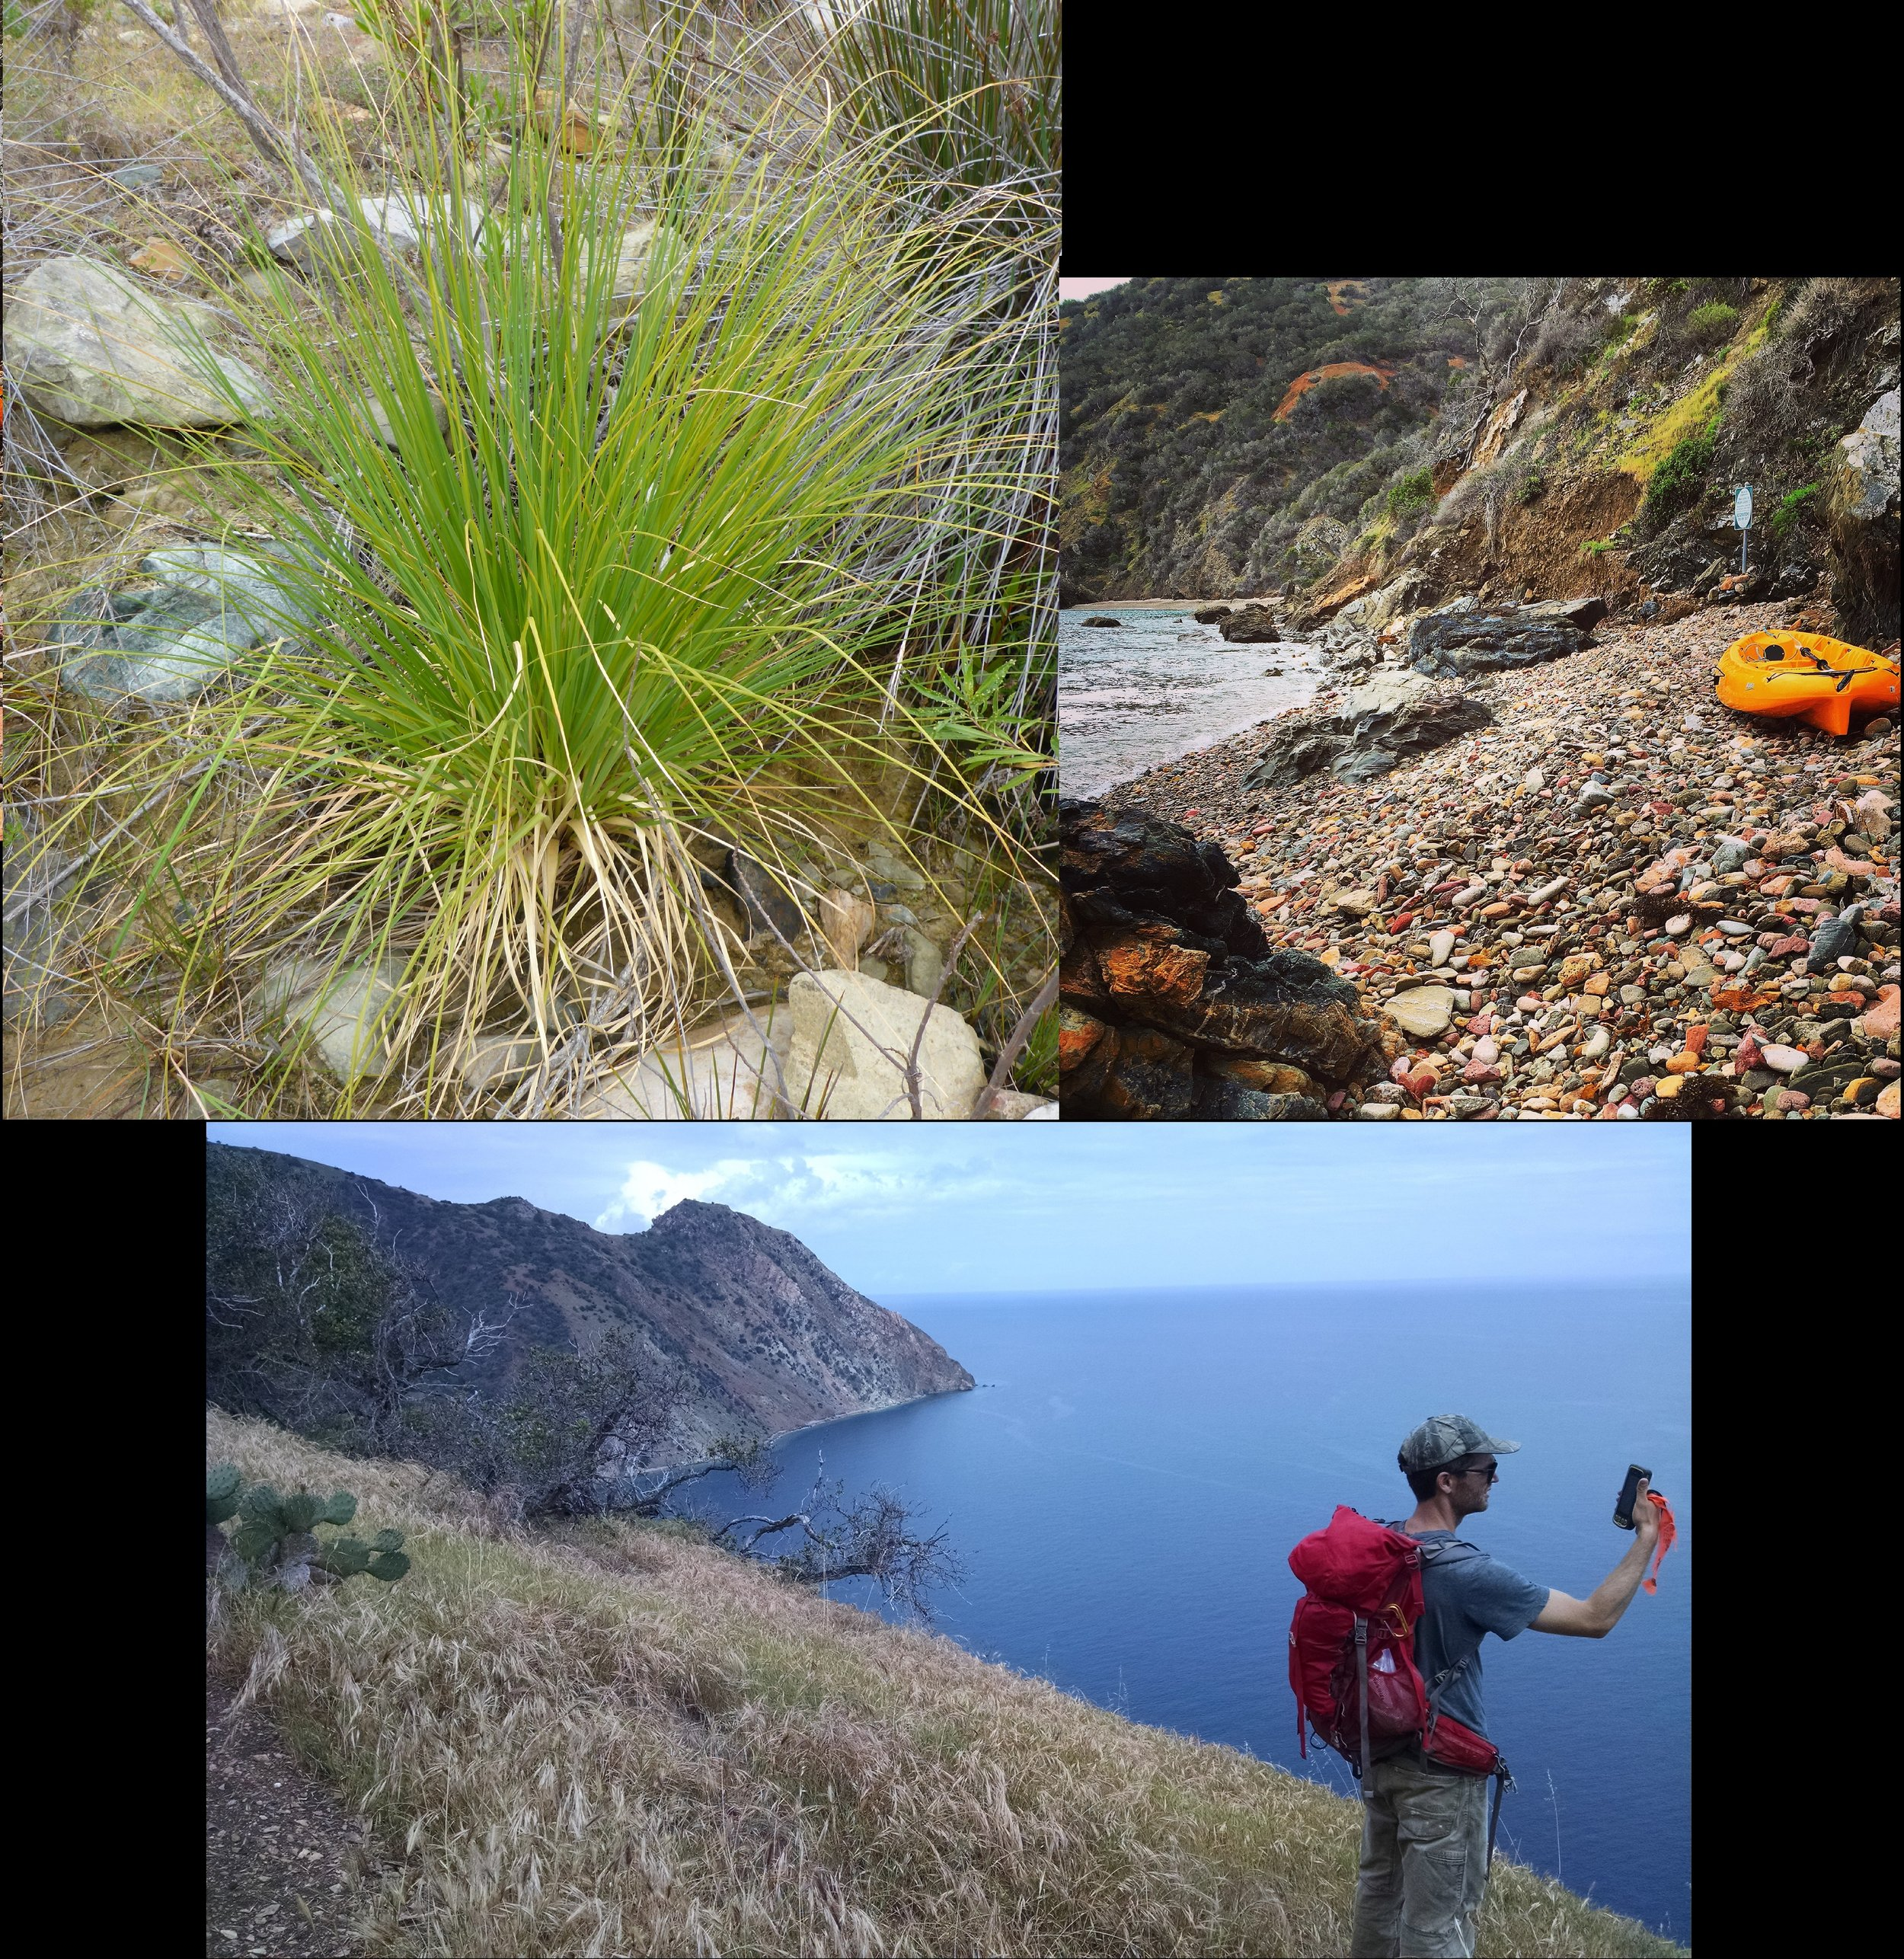 On Catalina Island, some of our target plant populations are not easily accessible from the road.